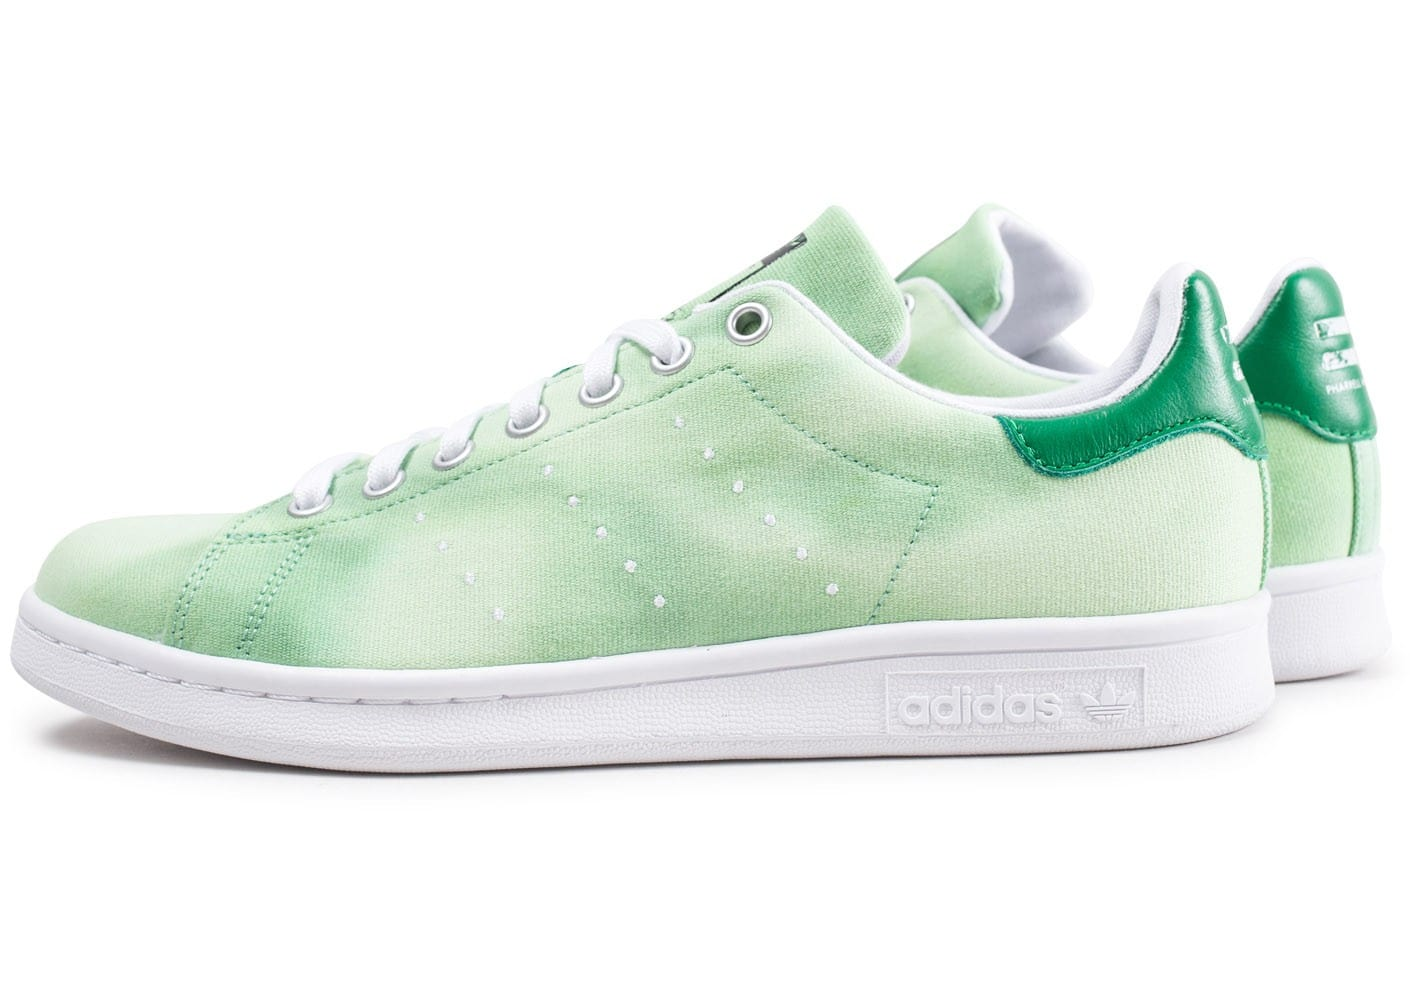 Chaussures Smith Chausport Holi Homme Adidas Baskets Stan Hu Verte wX4Uqf1